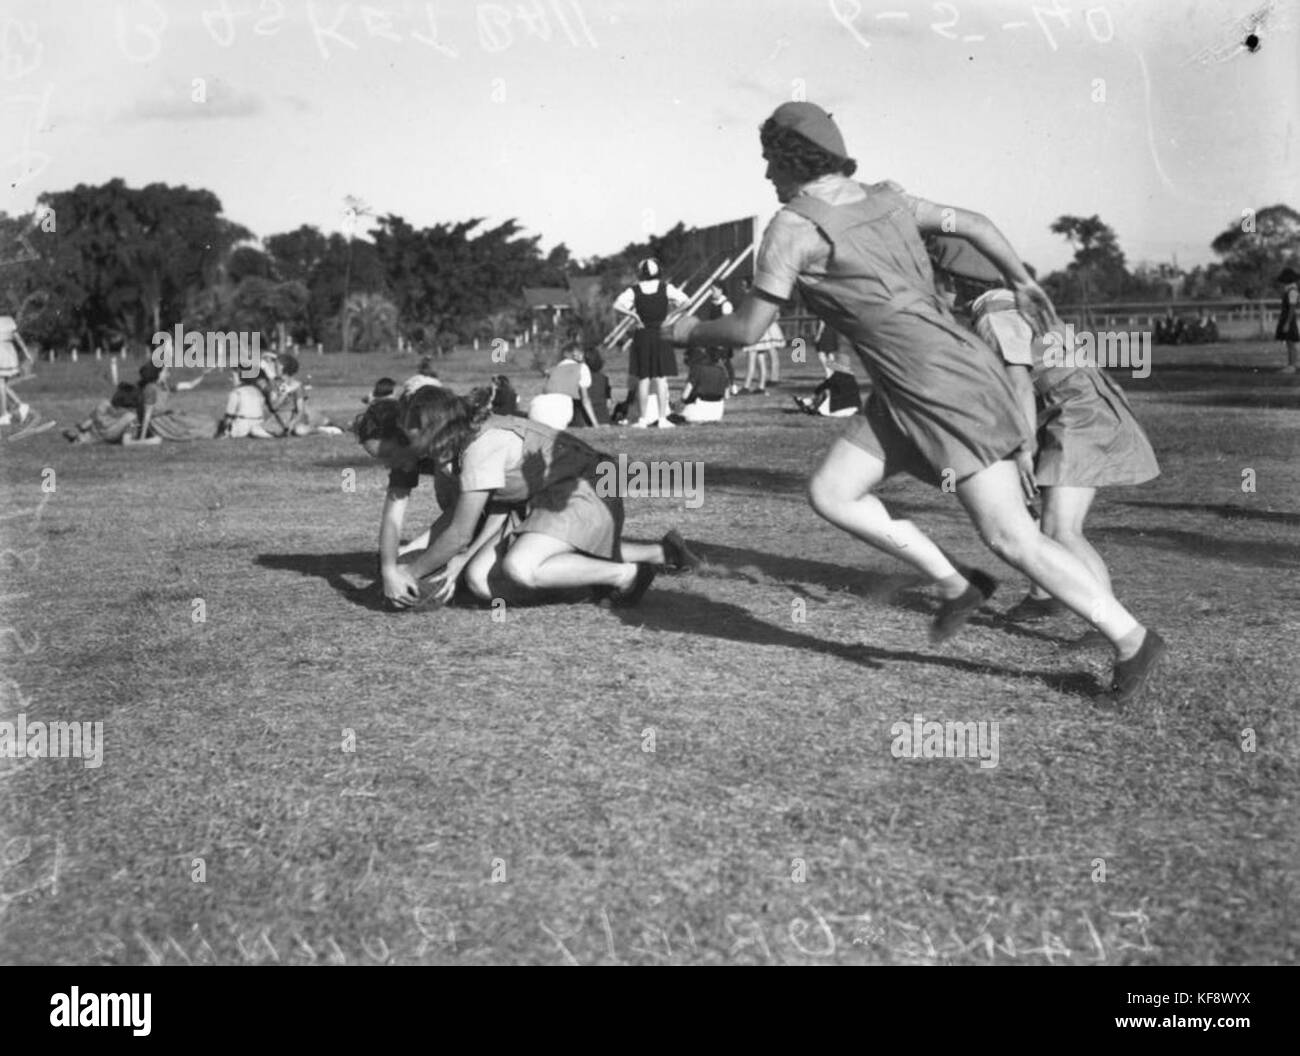 1 105228 Girls Wrestling Over The Ball During A Netball Game In Stock Photo Alamy